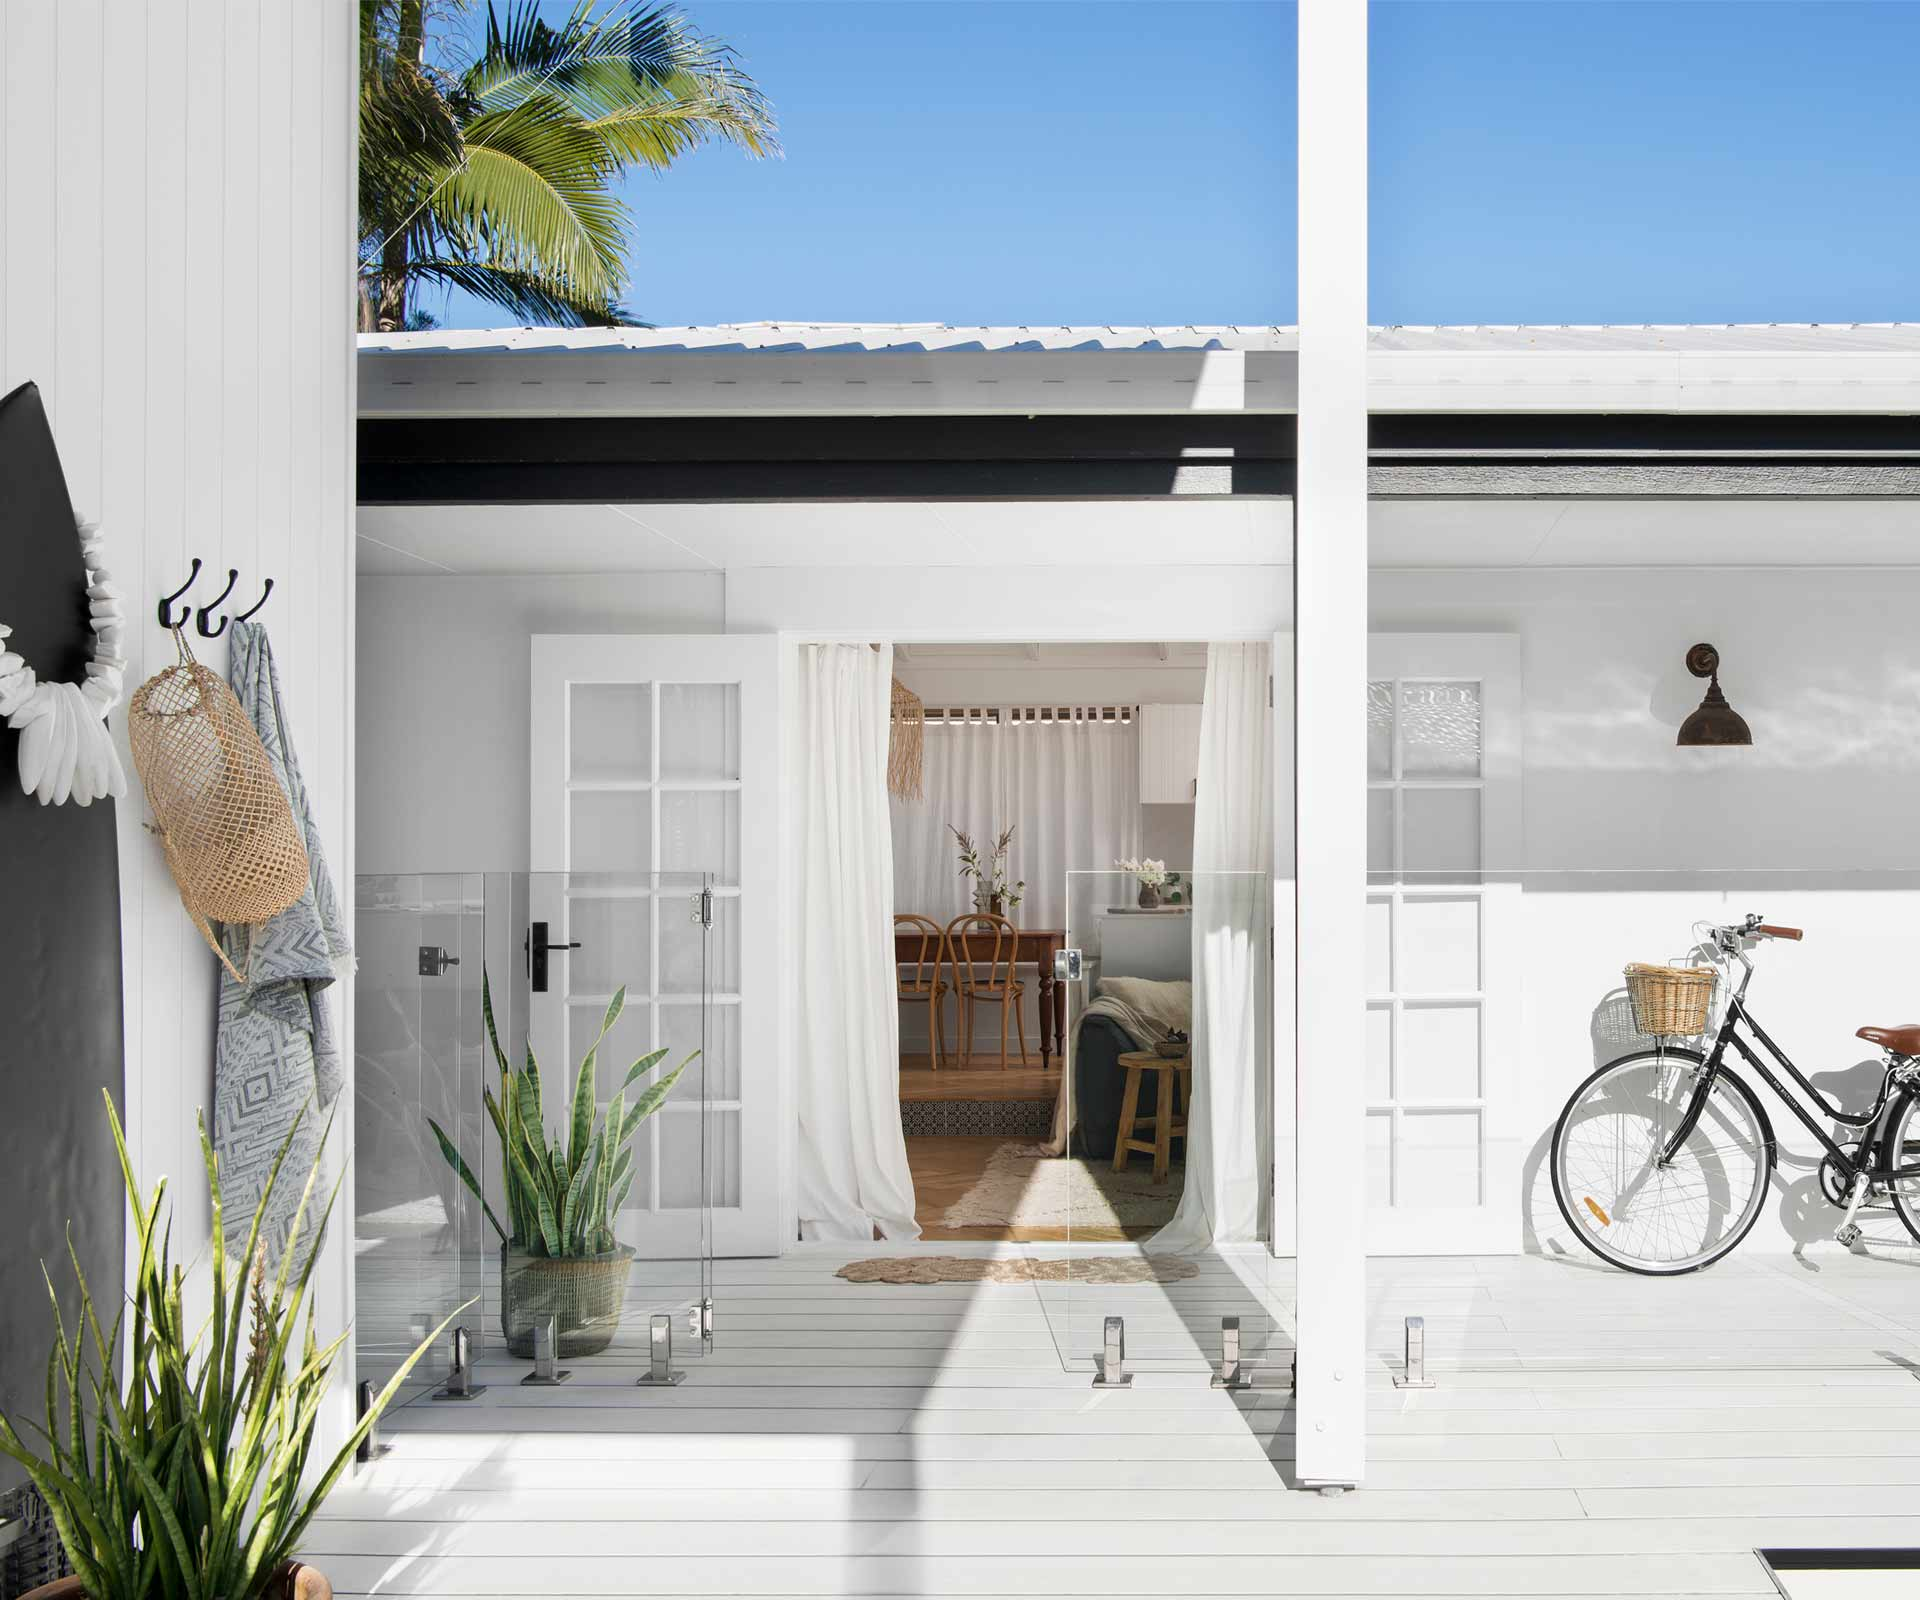 This chic beach house in Mooloolaba is the perfect escape